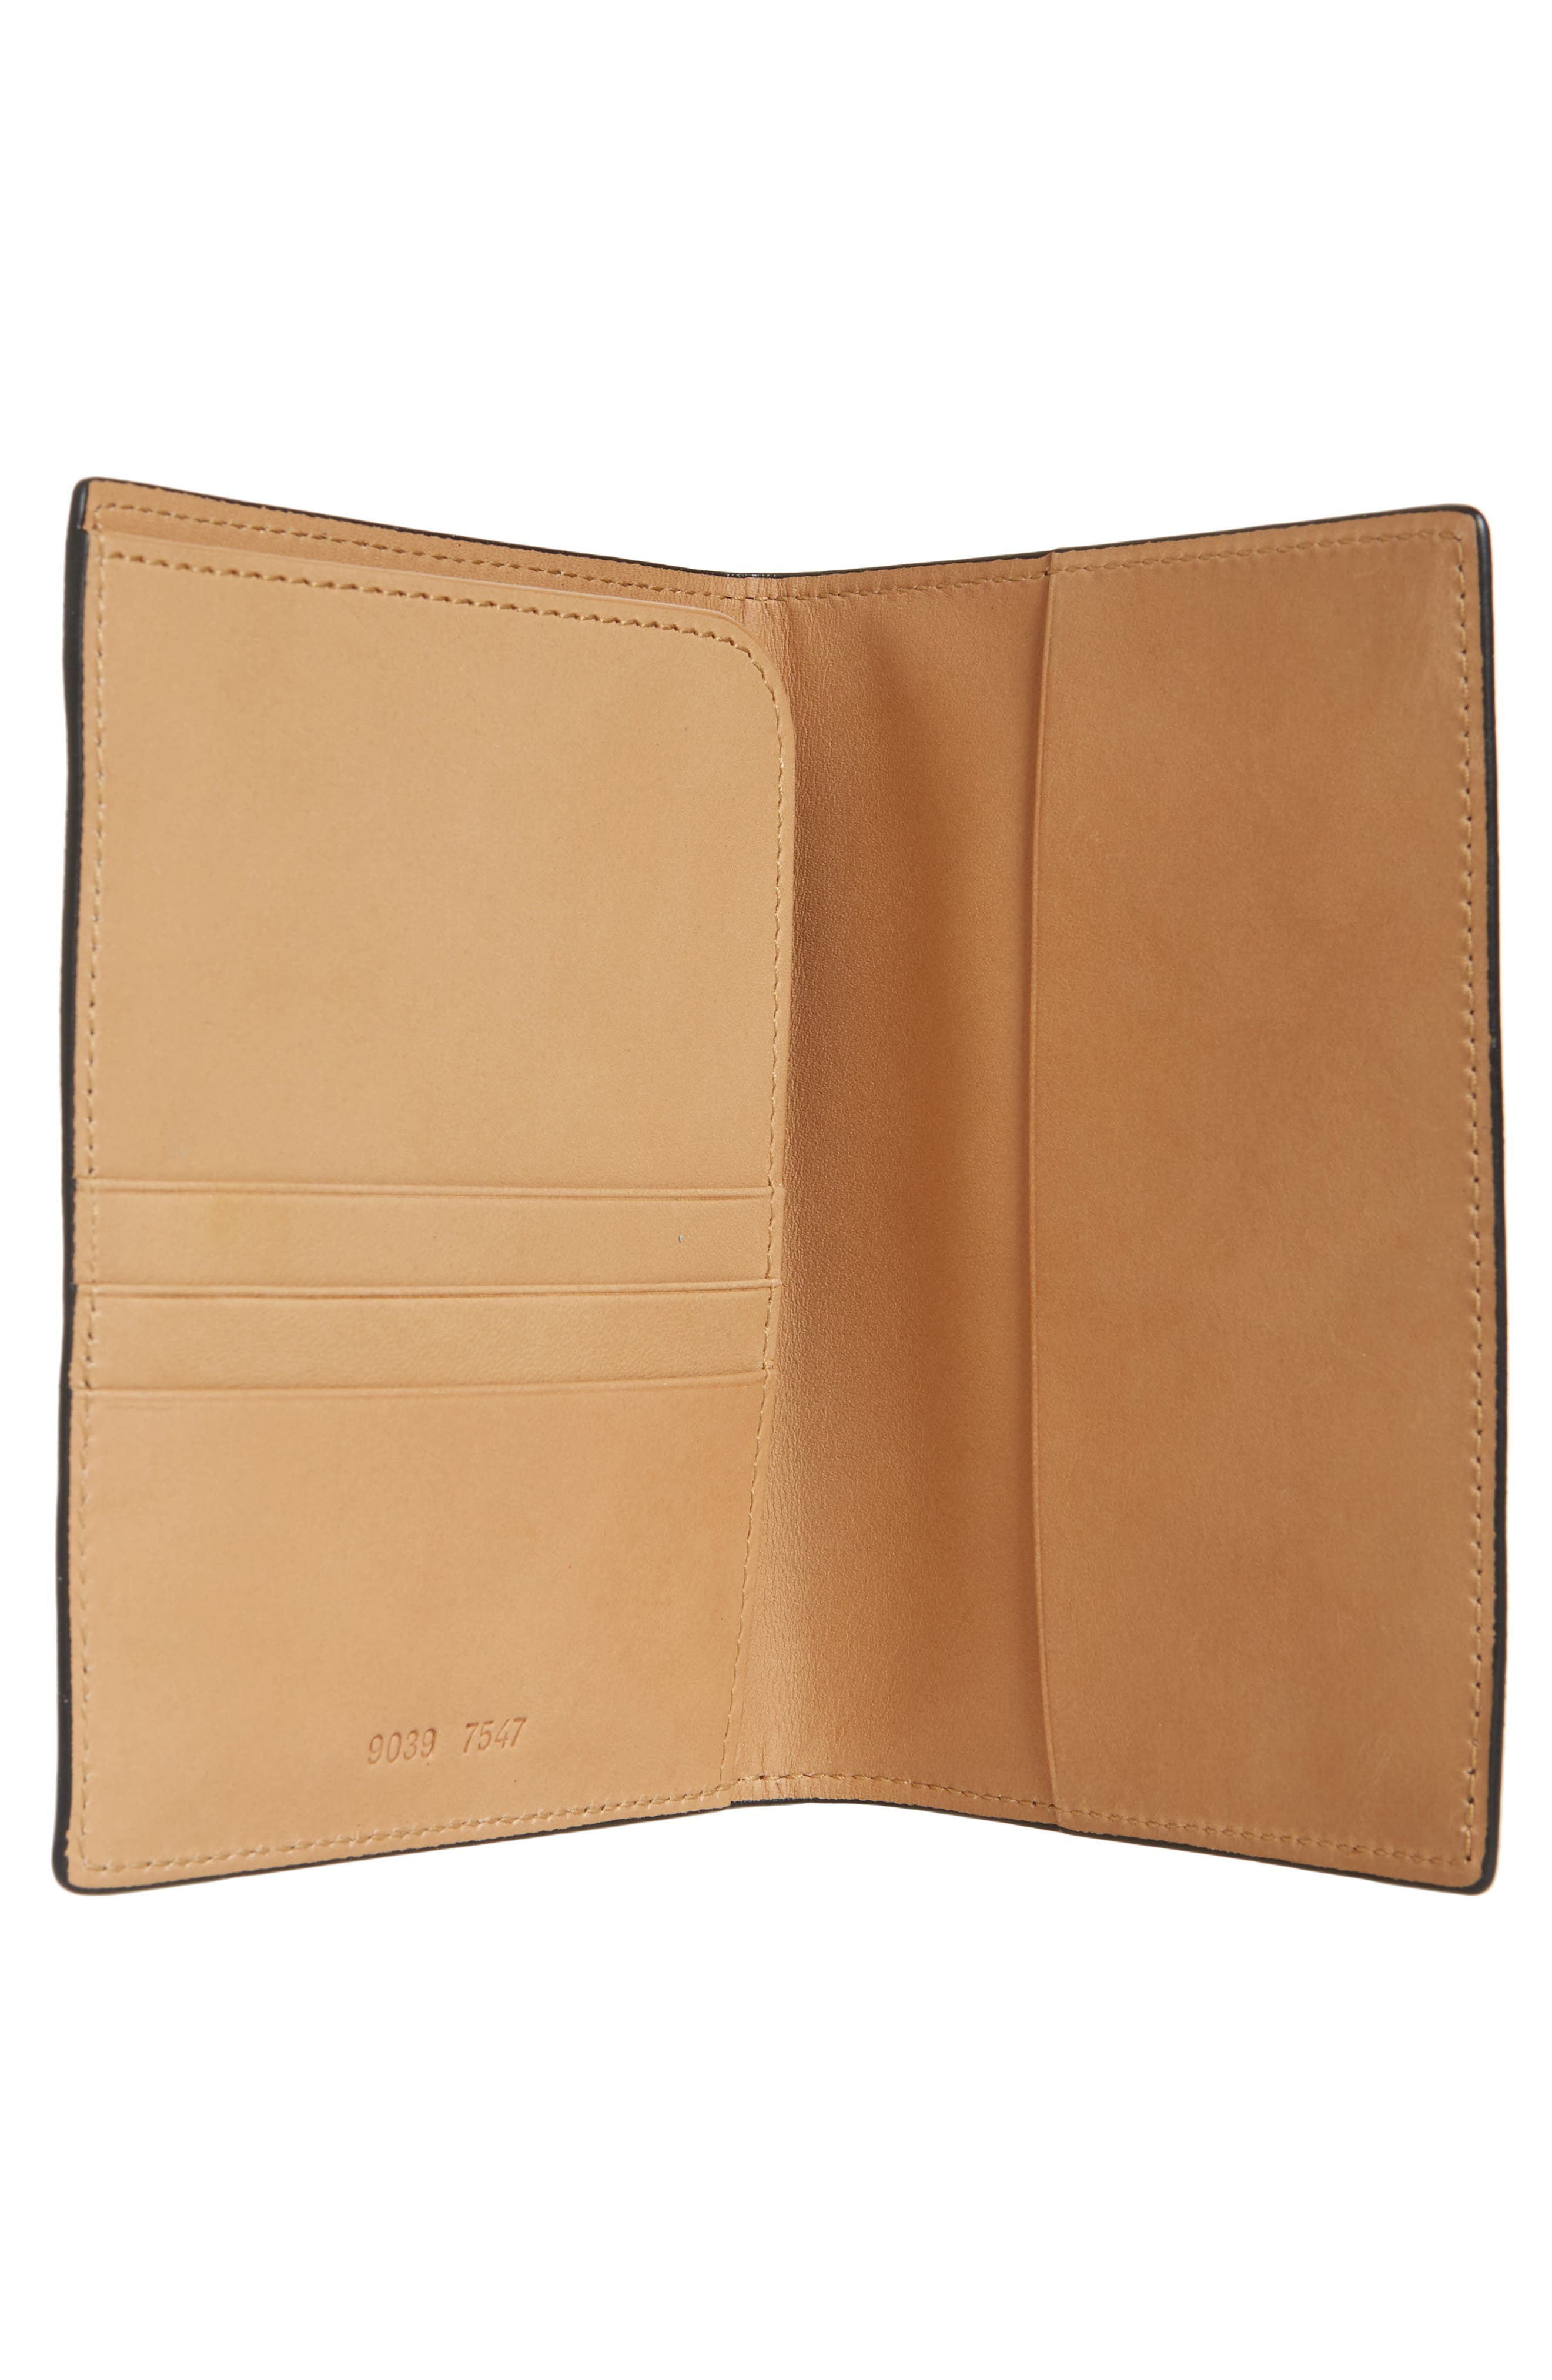 COMMON PROJECTS, Nappa Leather Passport Holder, Alternate thumbnail 2, color, 001